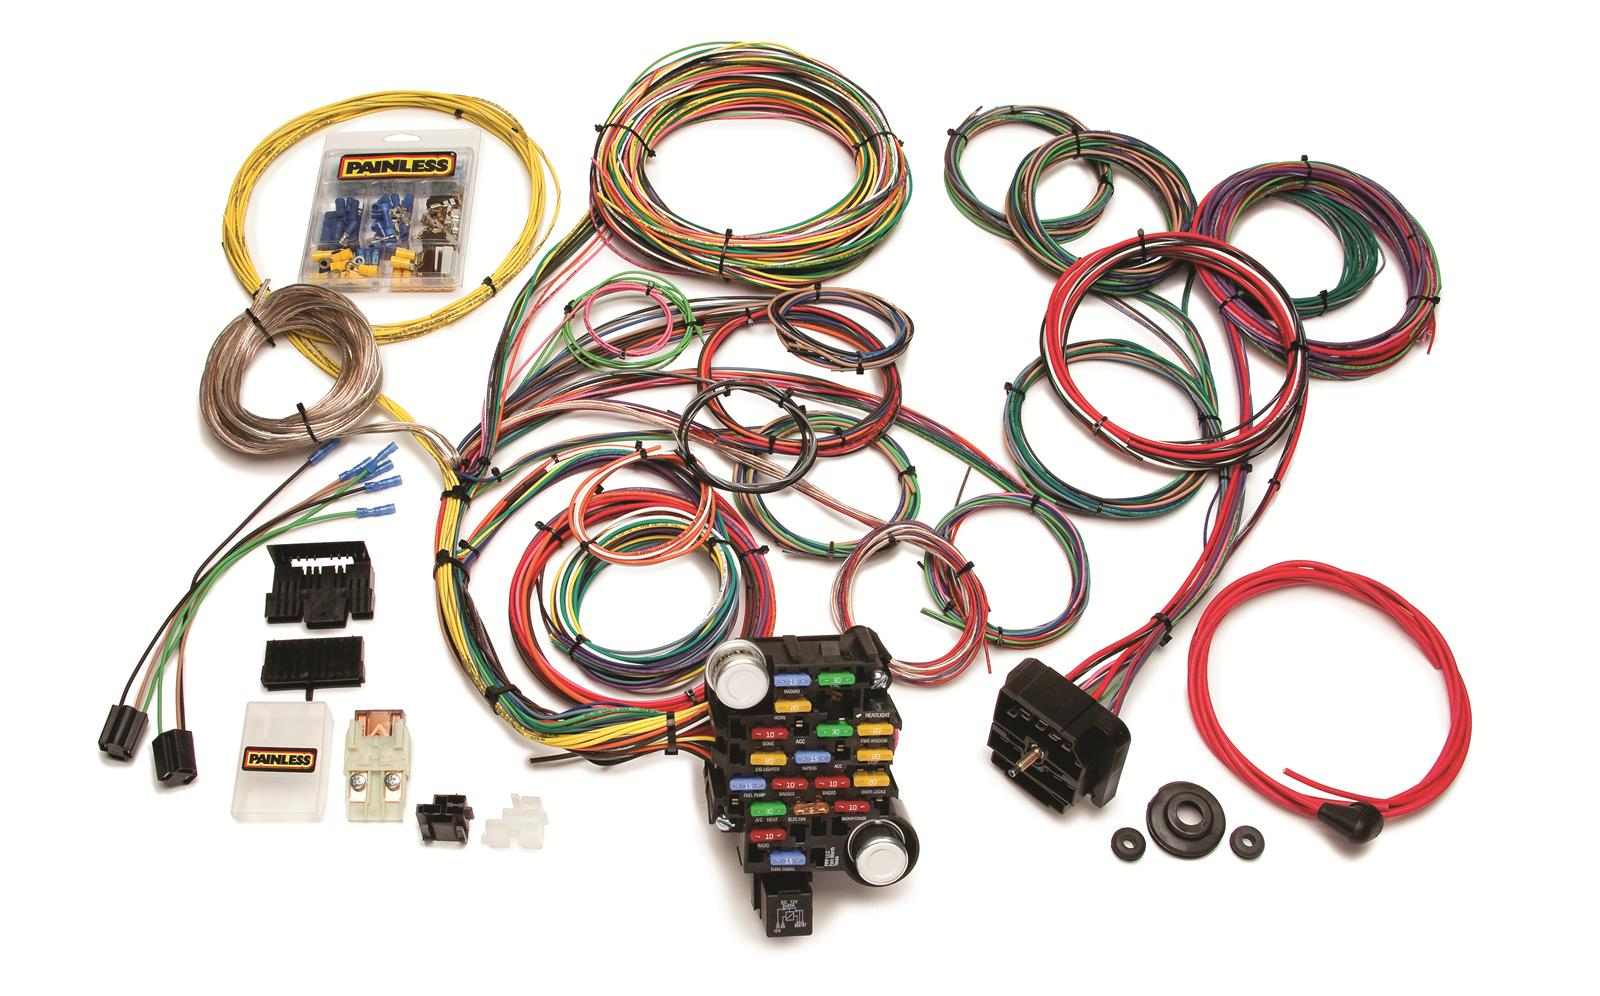 painless wiring 20104 wiring harness 18-circuit dash | ebay universal painless wiring harness diagram painless wiring harness racing